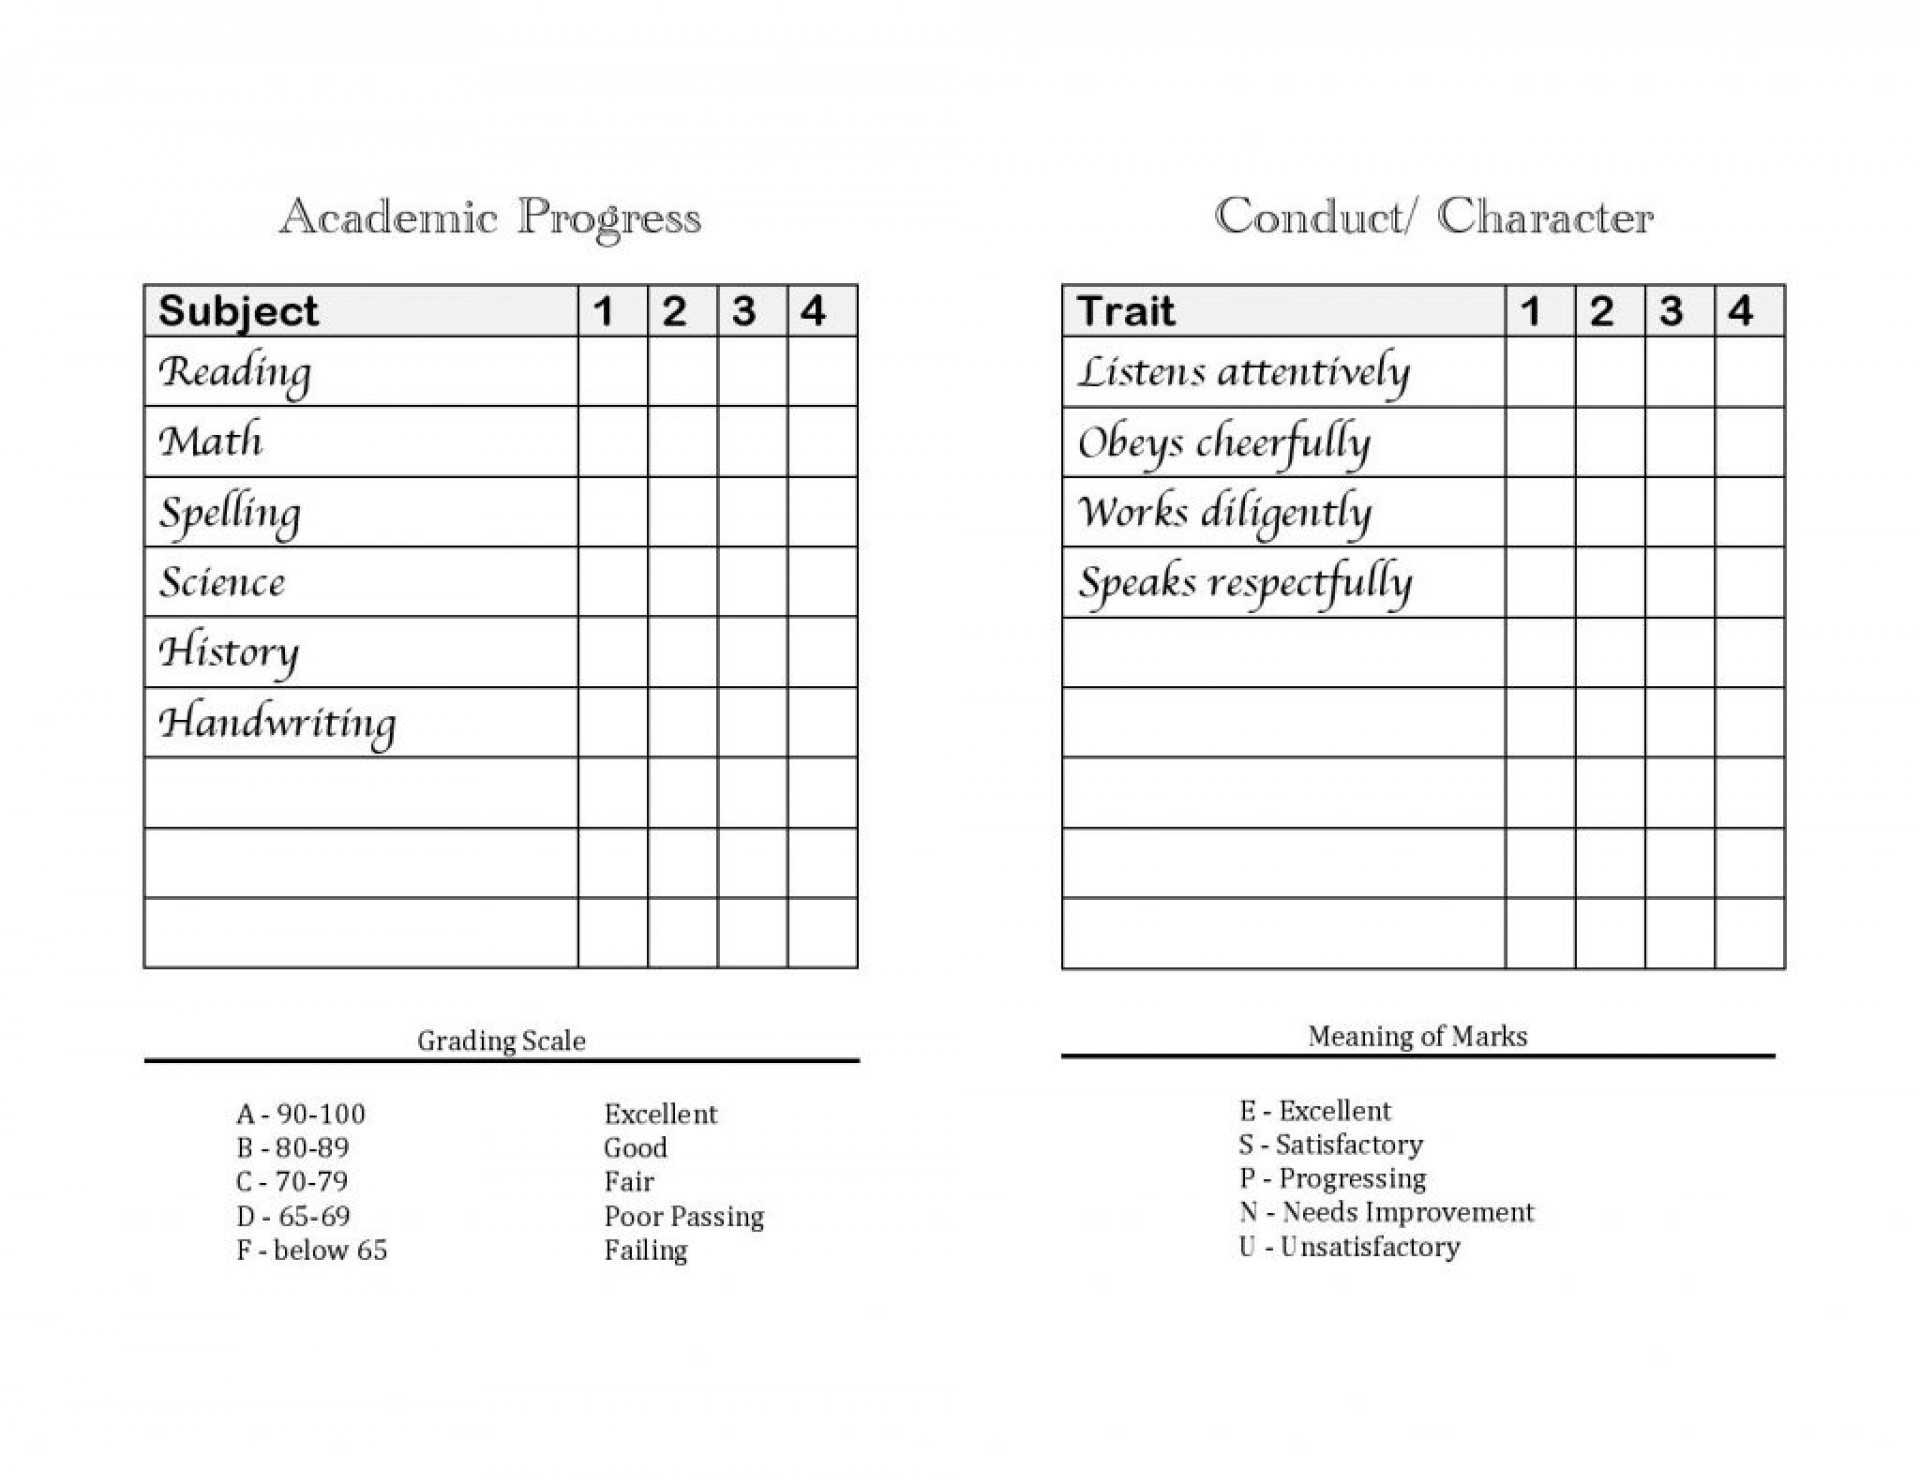 036 Free Download Report Card Template For Homeschoolers With Character Report Card Template